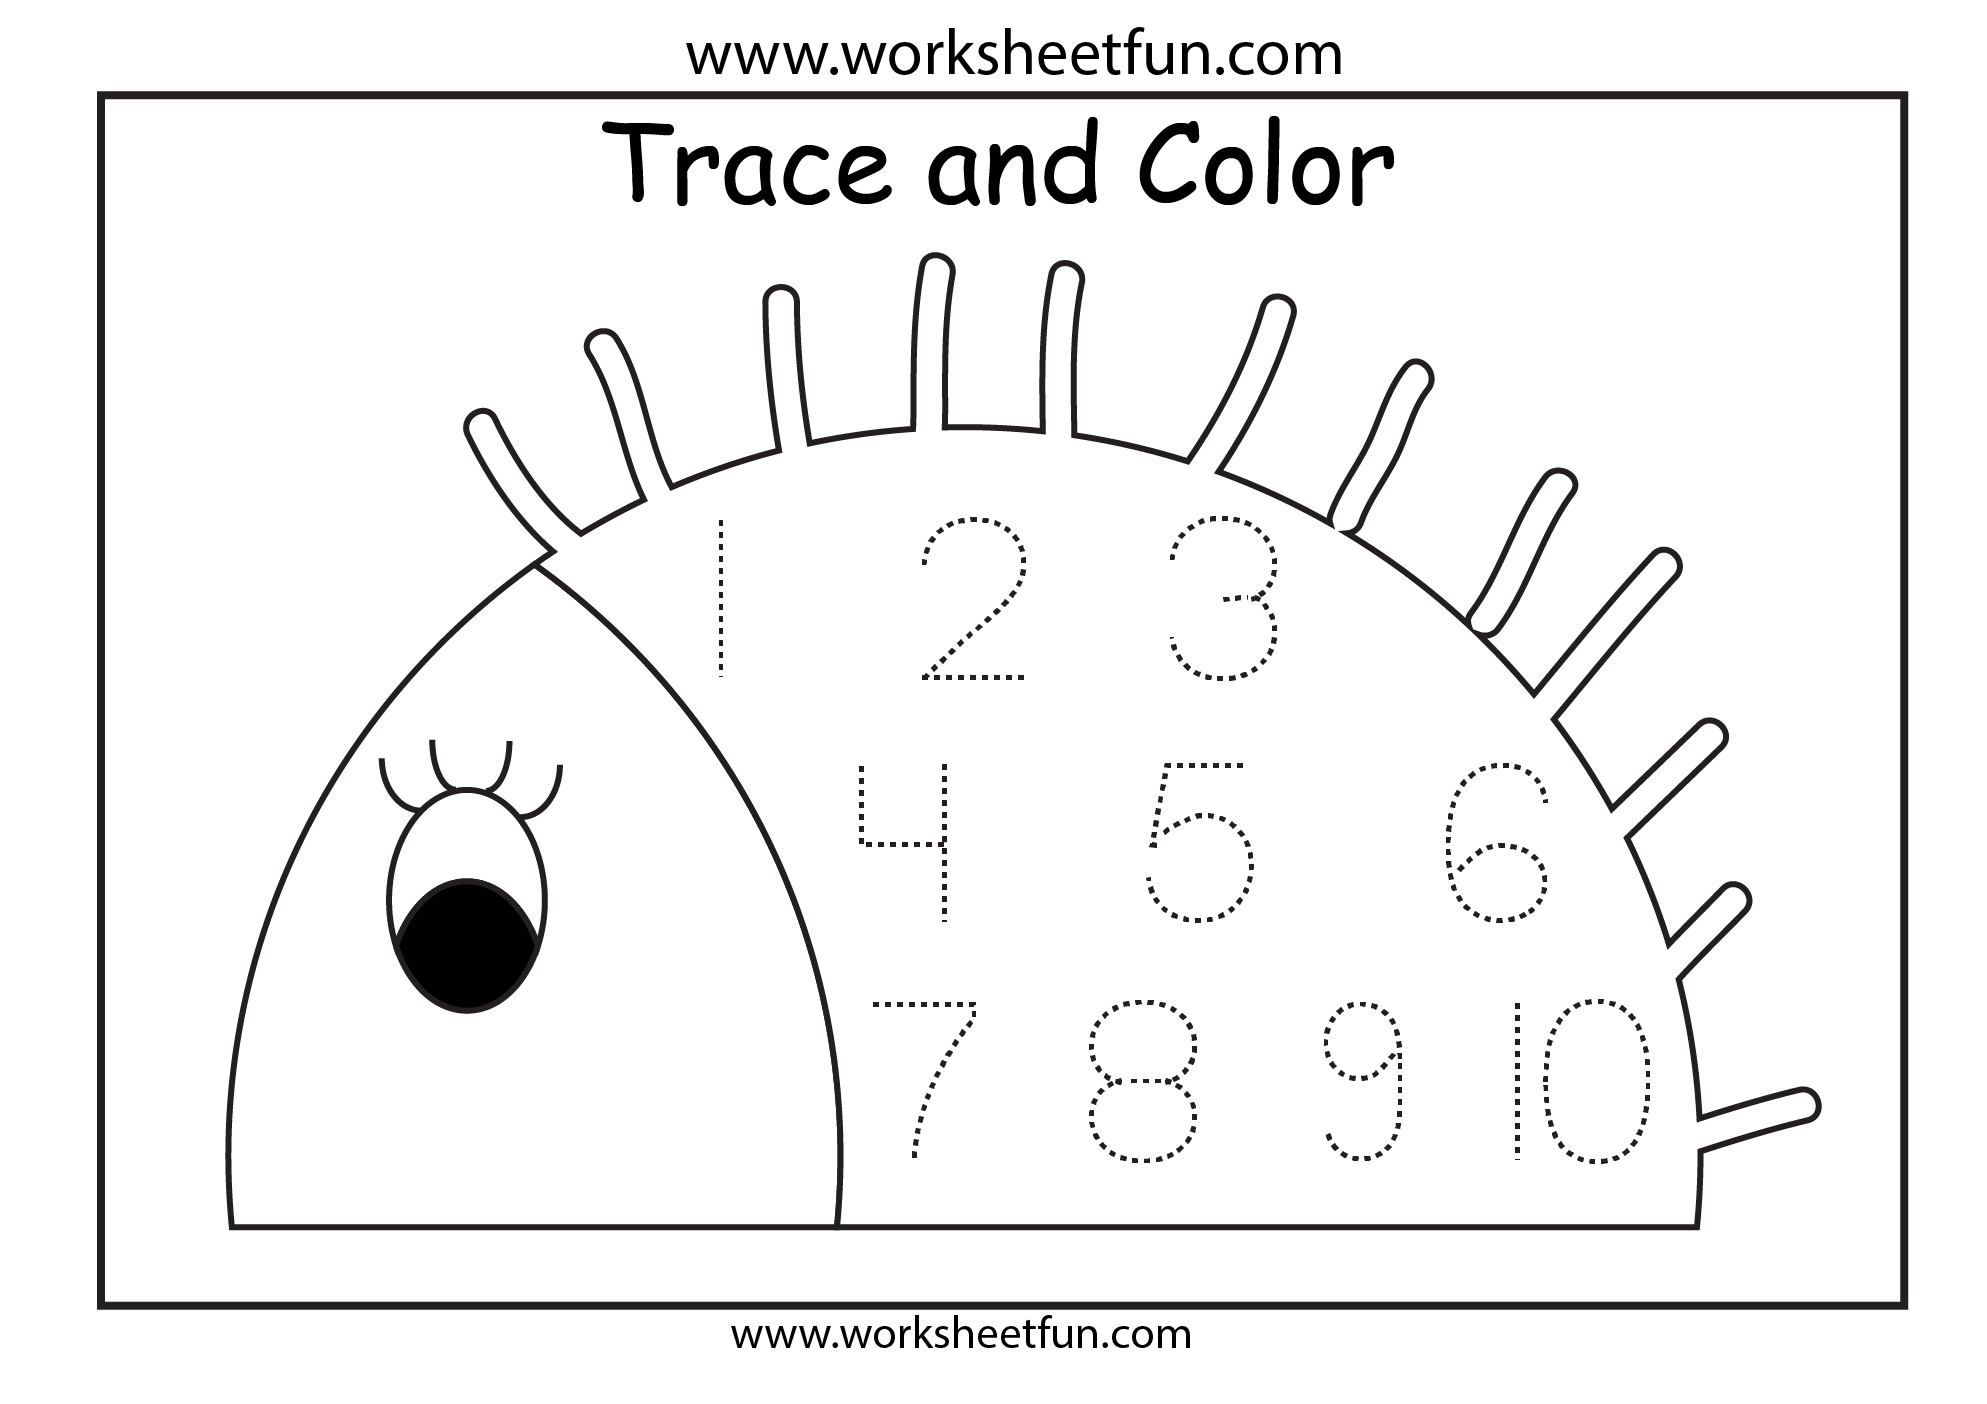 worksheet Number 10 Worksheets 10 images about paper and pencil on pinterest printable numbers math worksheets connect the dots